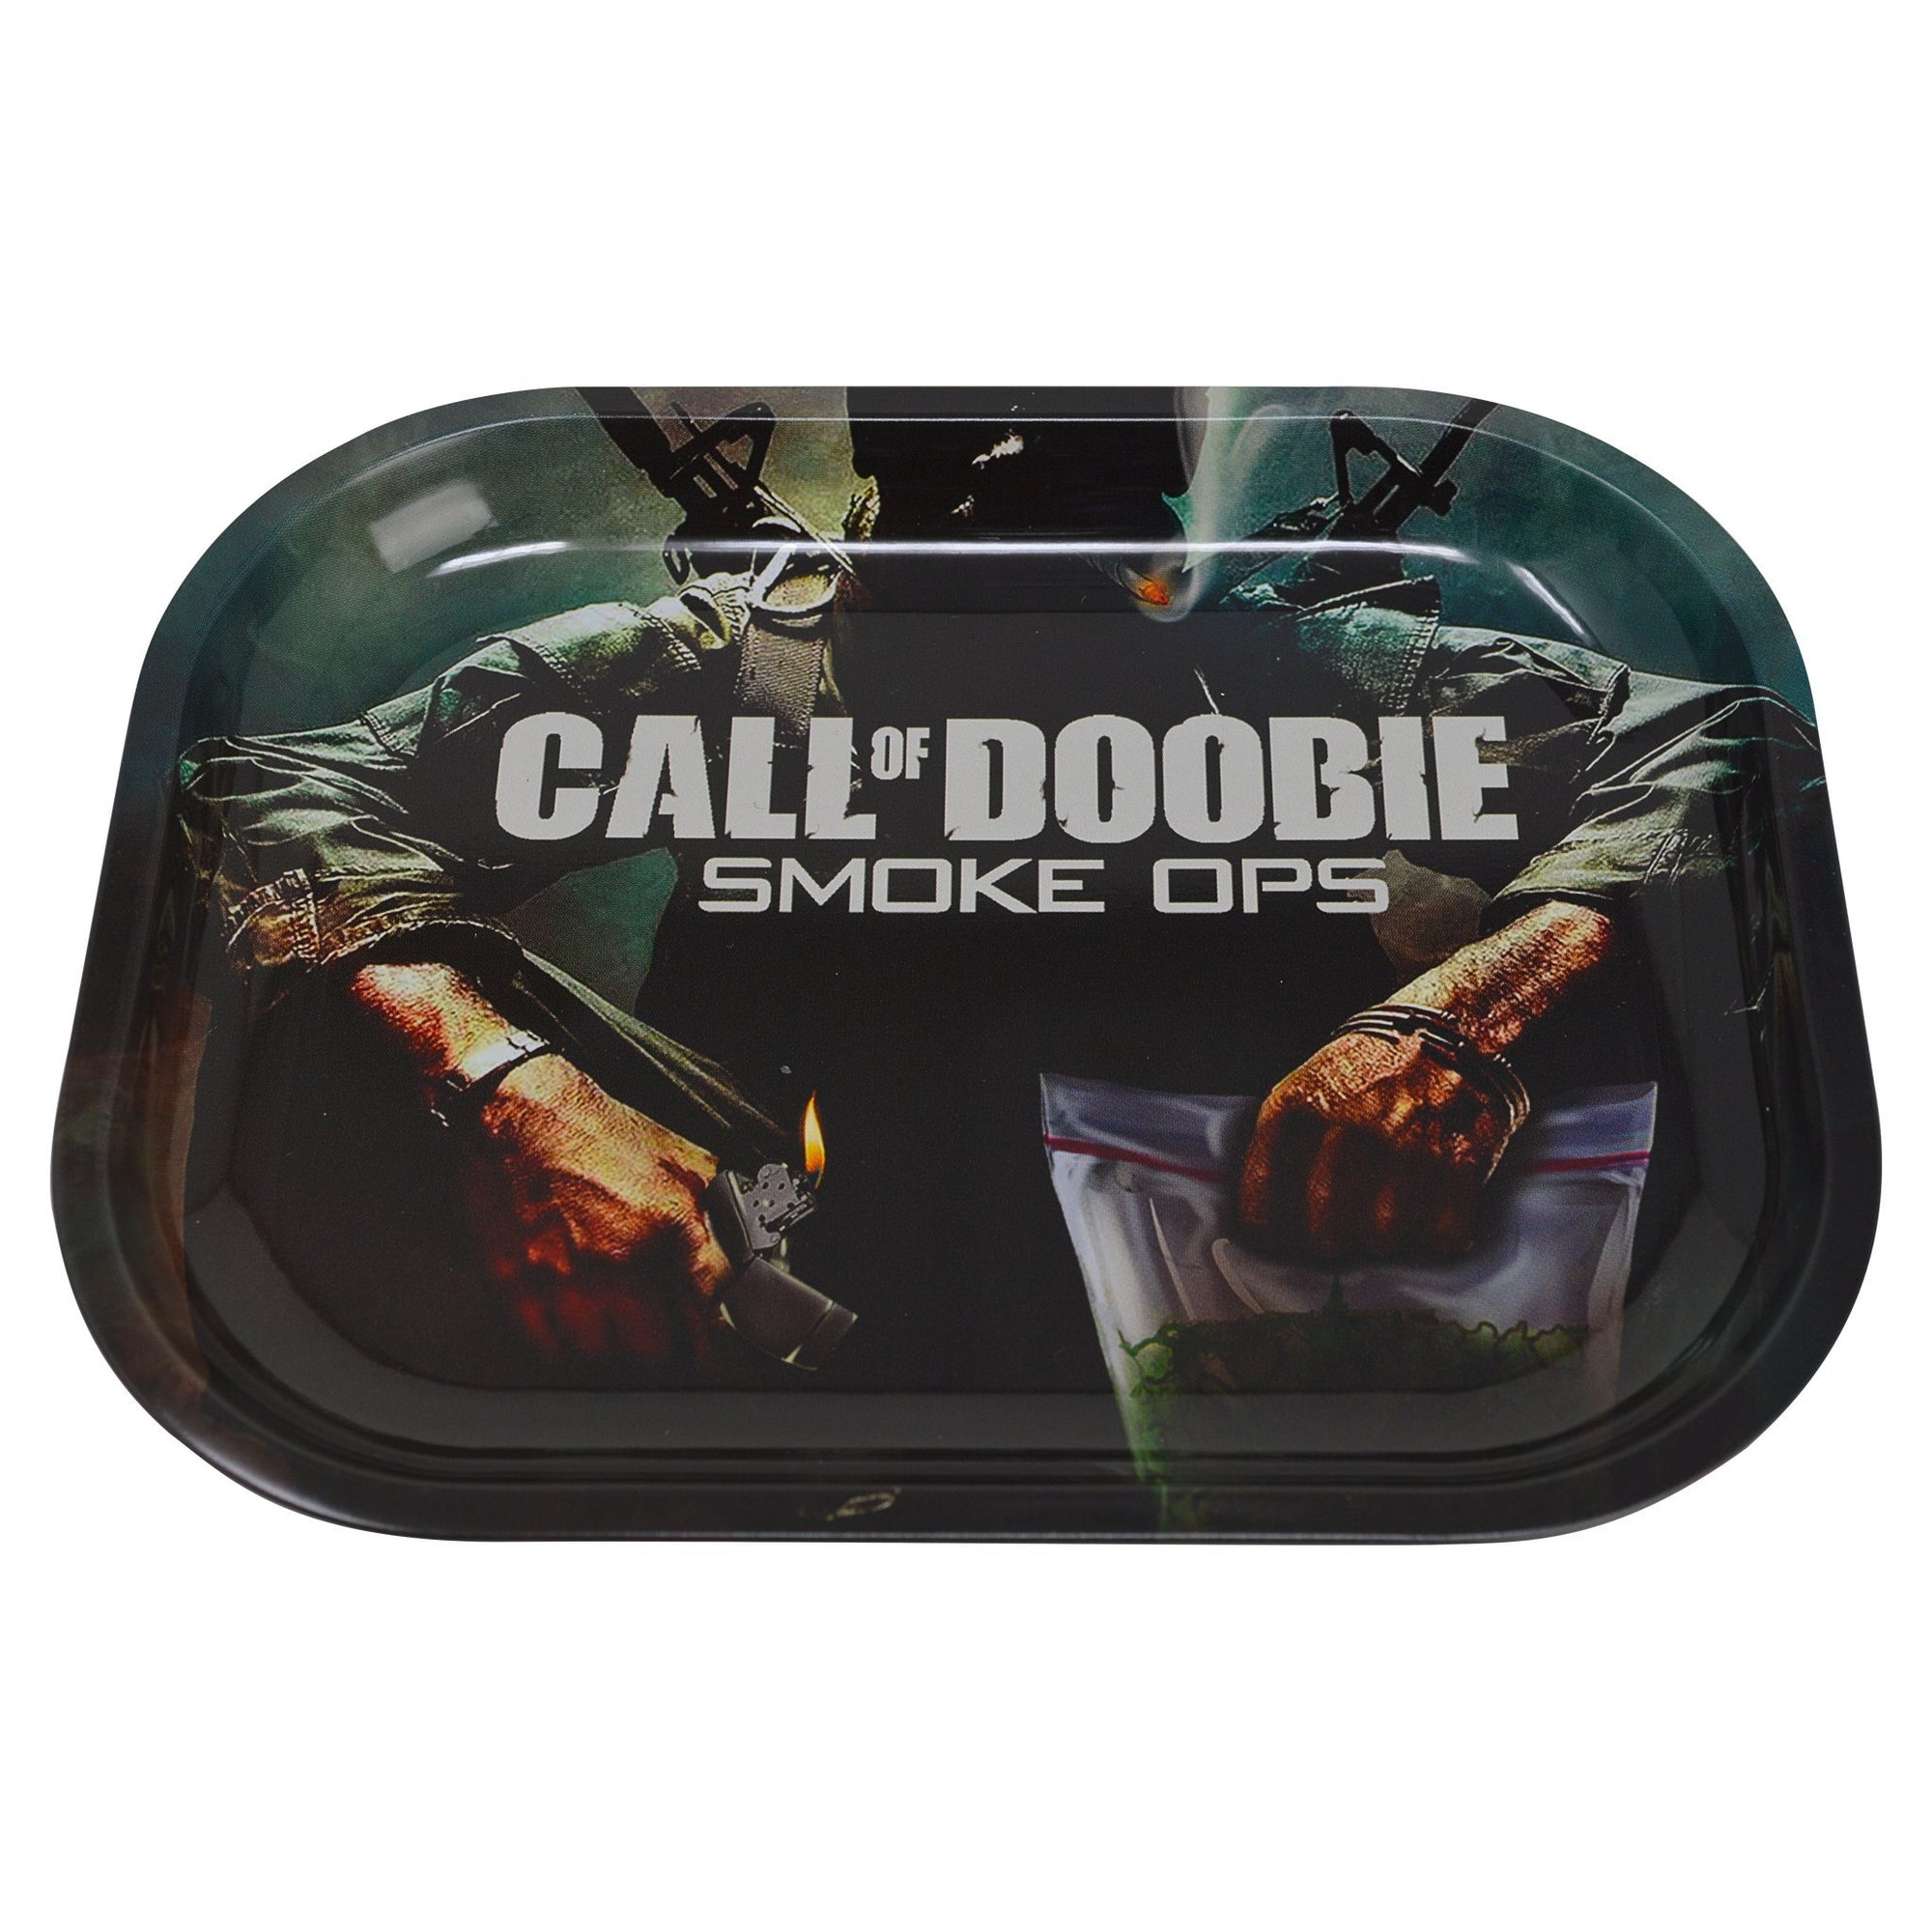 Handy rolling tray smoking accessory Call of Duty video game themed soldier holding weed lighter design